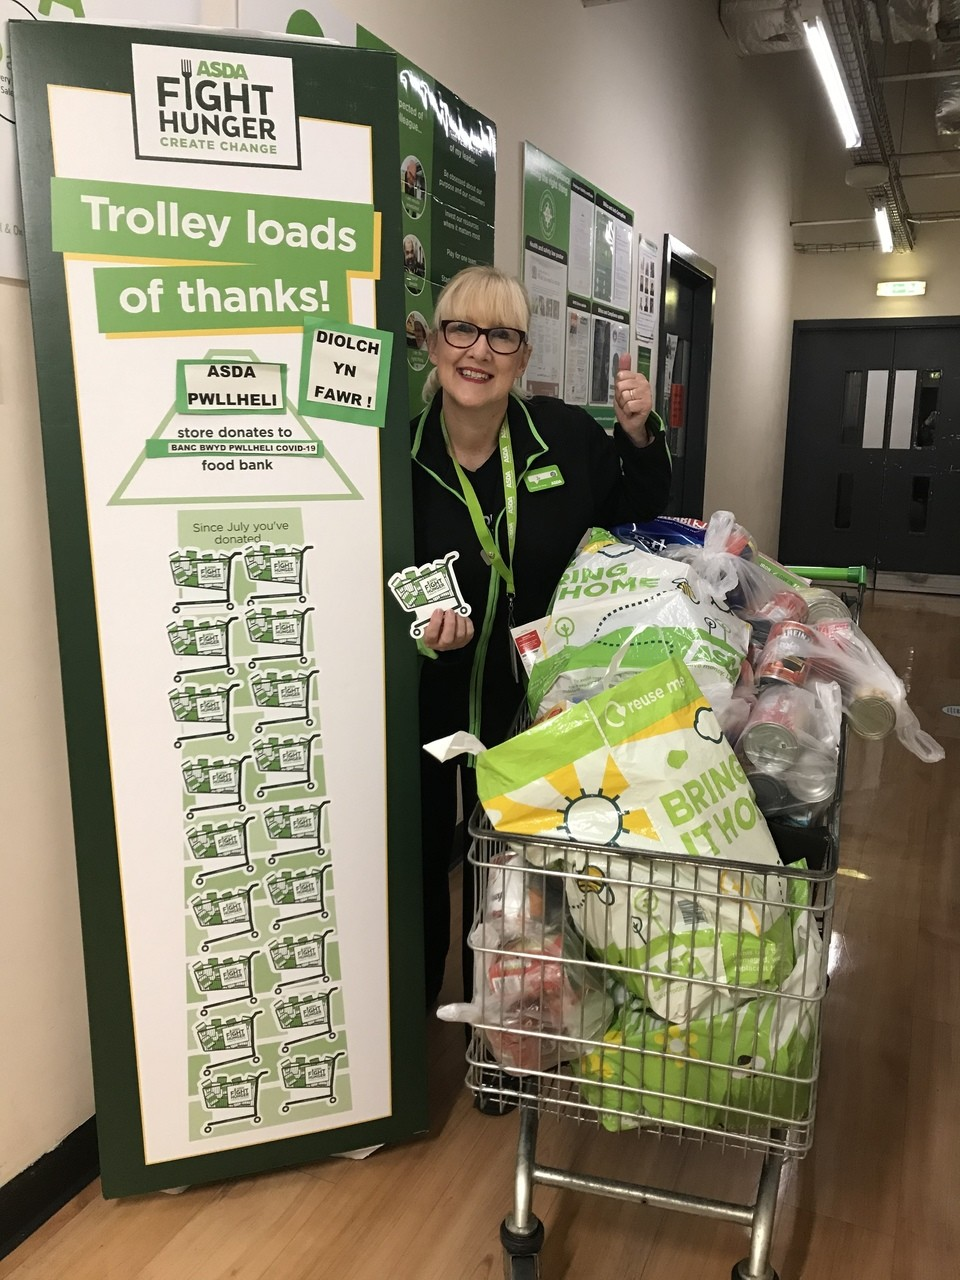 Fight Hunger Create Change thanks | Asda Pwllheli